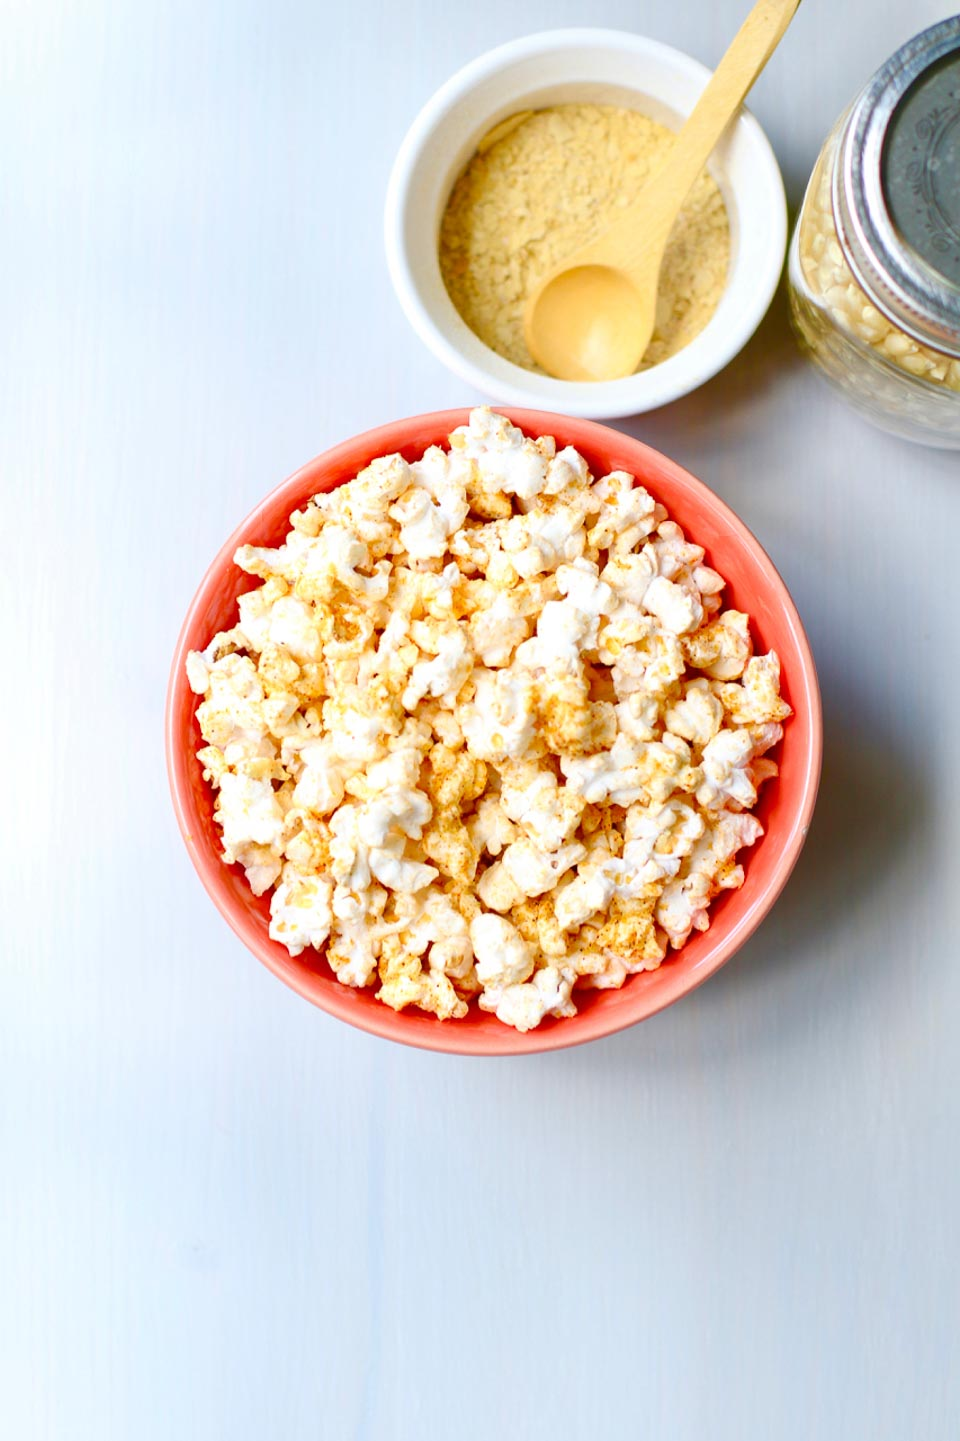 Chili Cheese Popcorn - Nooch Popcorn